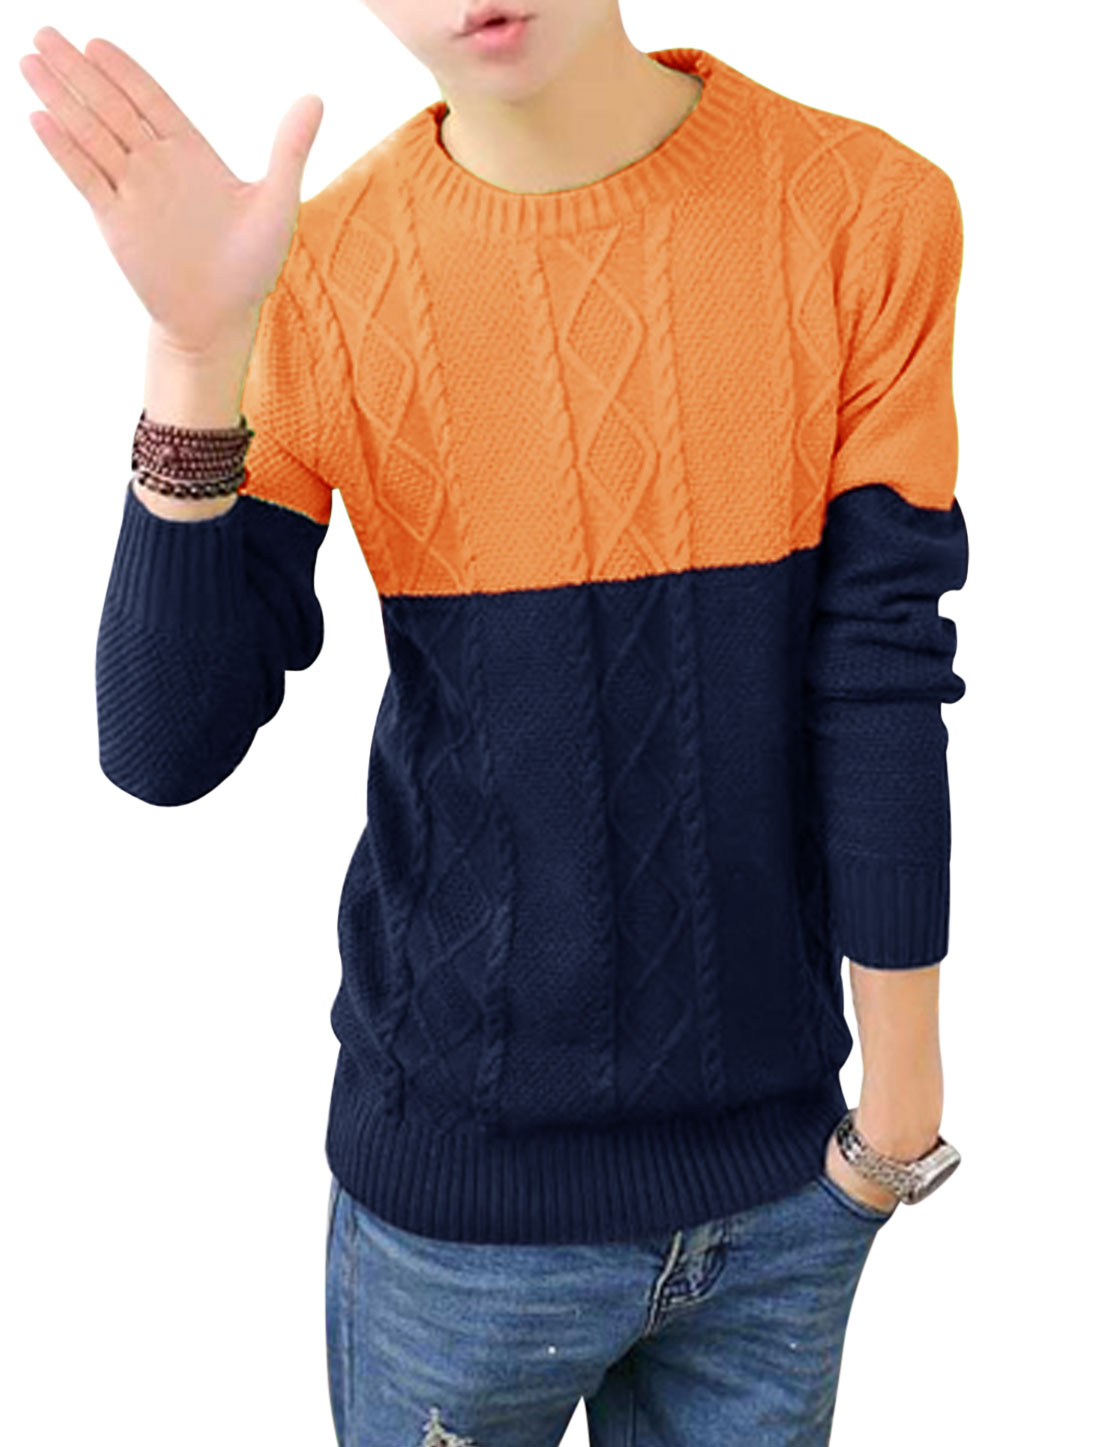 Men Argyle Design Cable Rib Knit Design Contrast Color Sweater Orange Navy Blue S